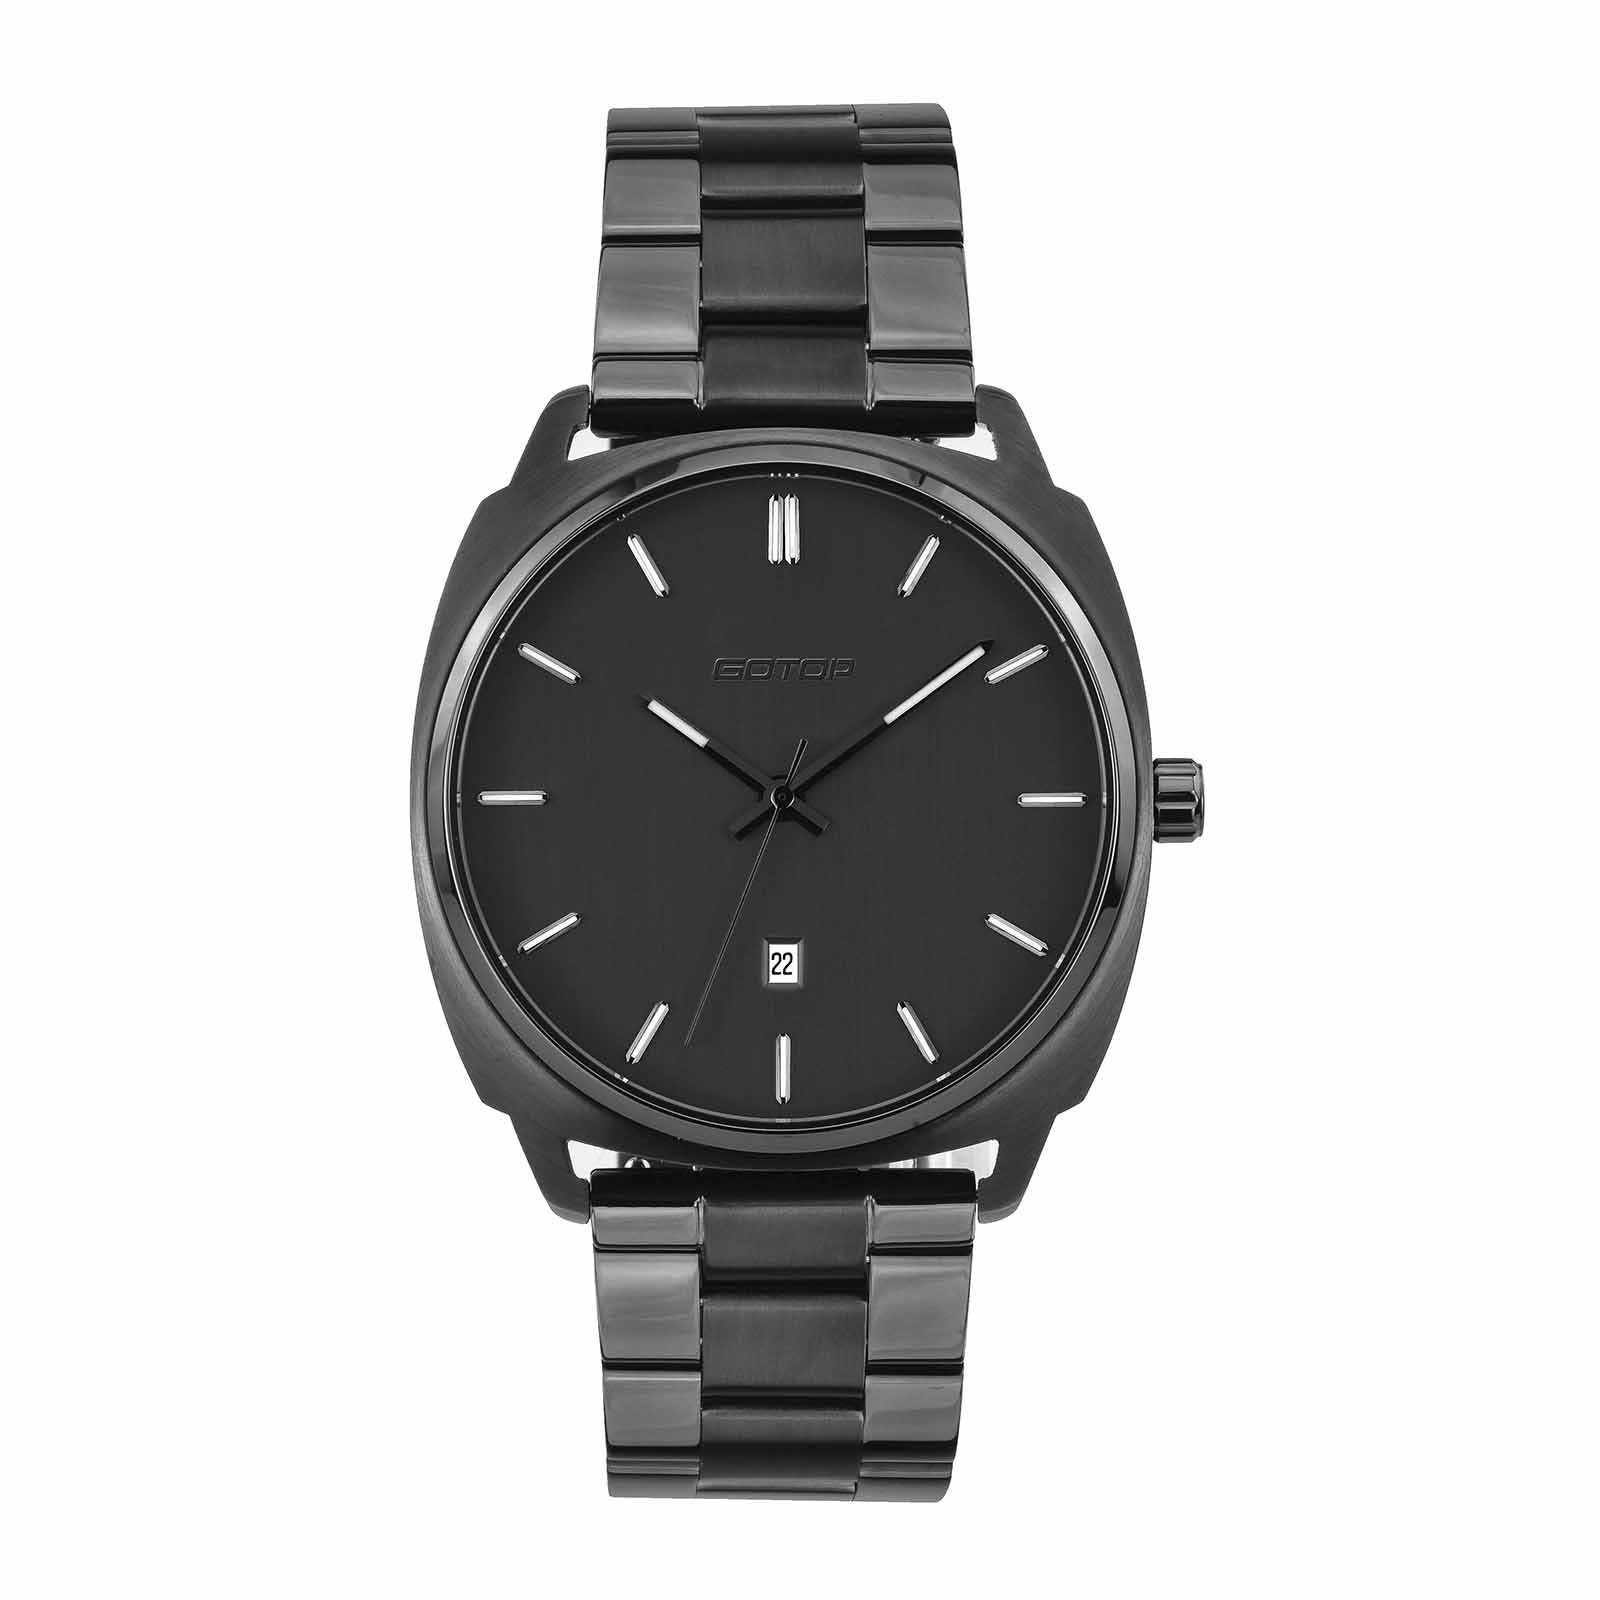 Solid Stainless Steel Watch For Men